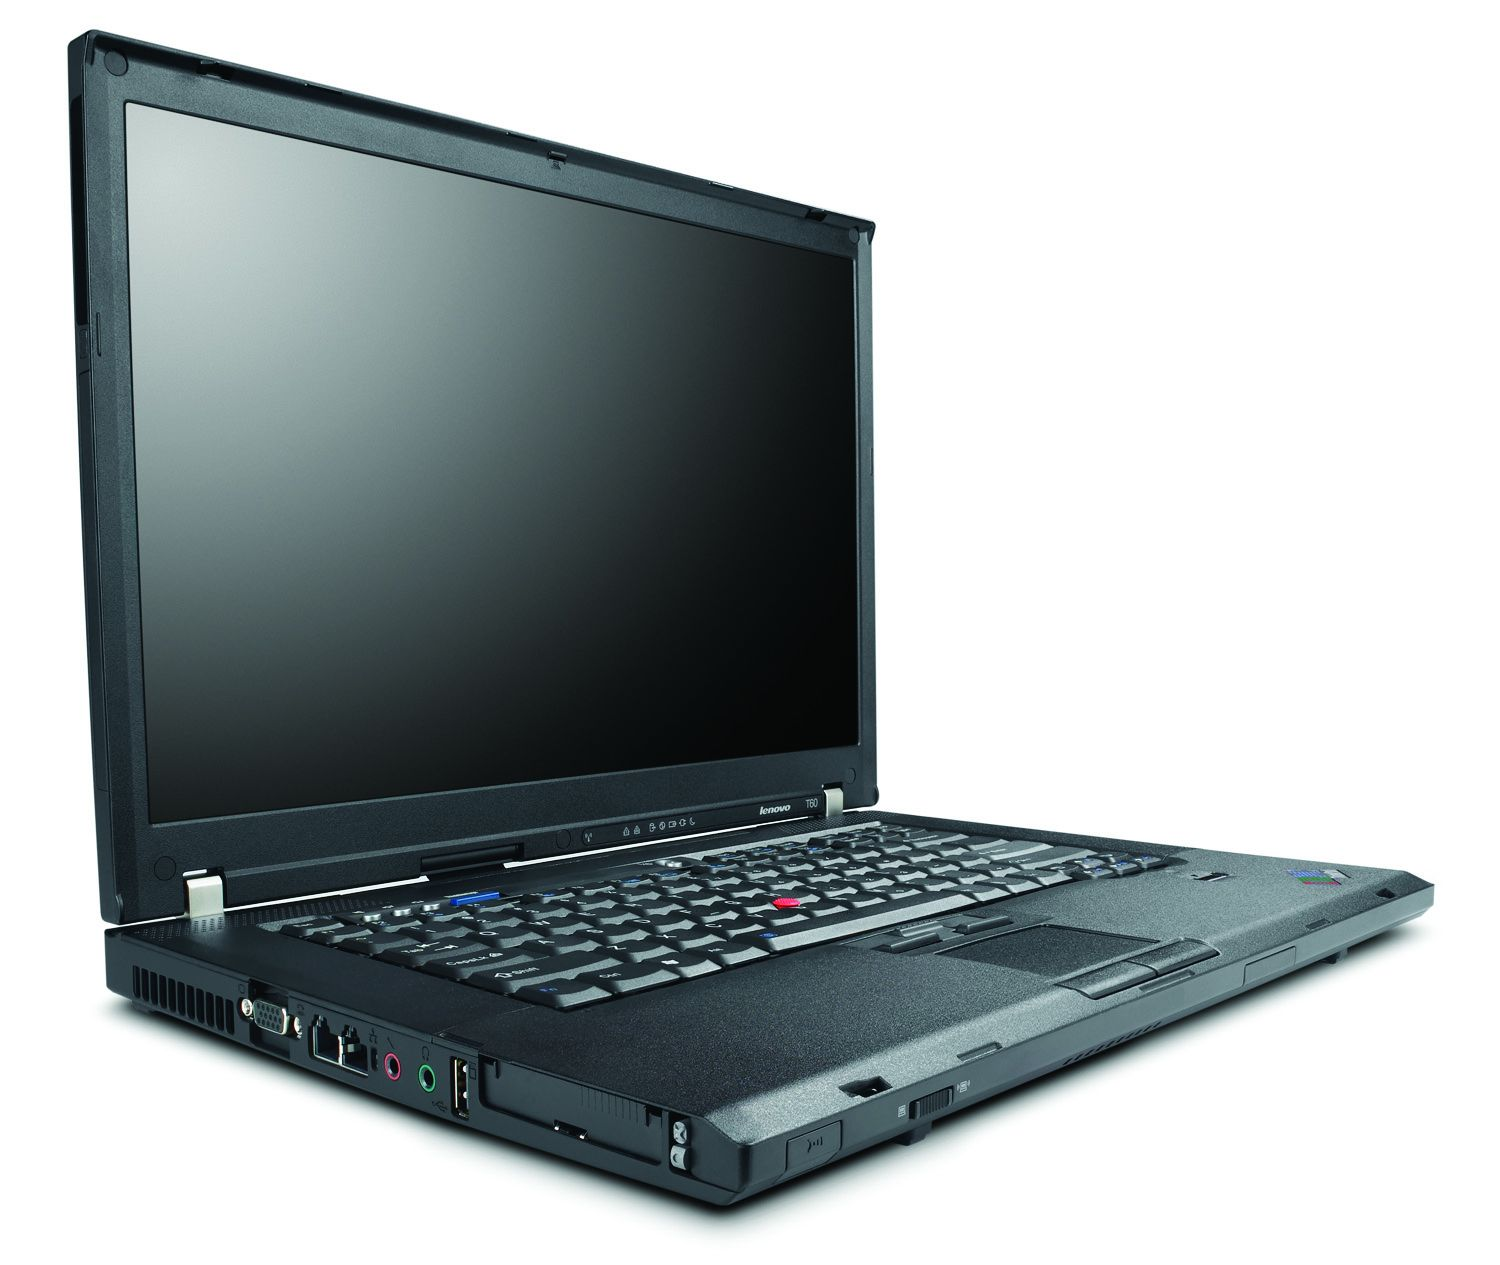 Lenovo ThinkPad T60 (15″ / Core Duo 1.83GHz / 80GB HDD / 2GB RAM) | The PC Room